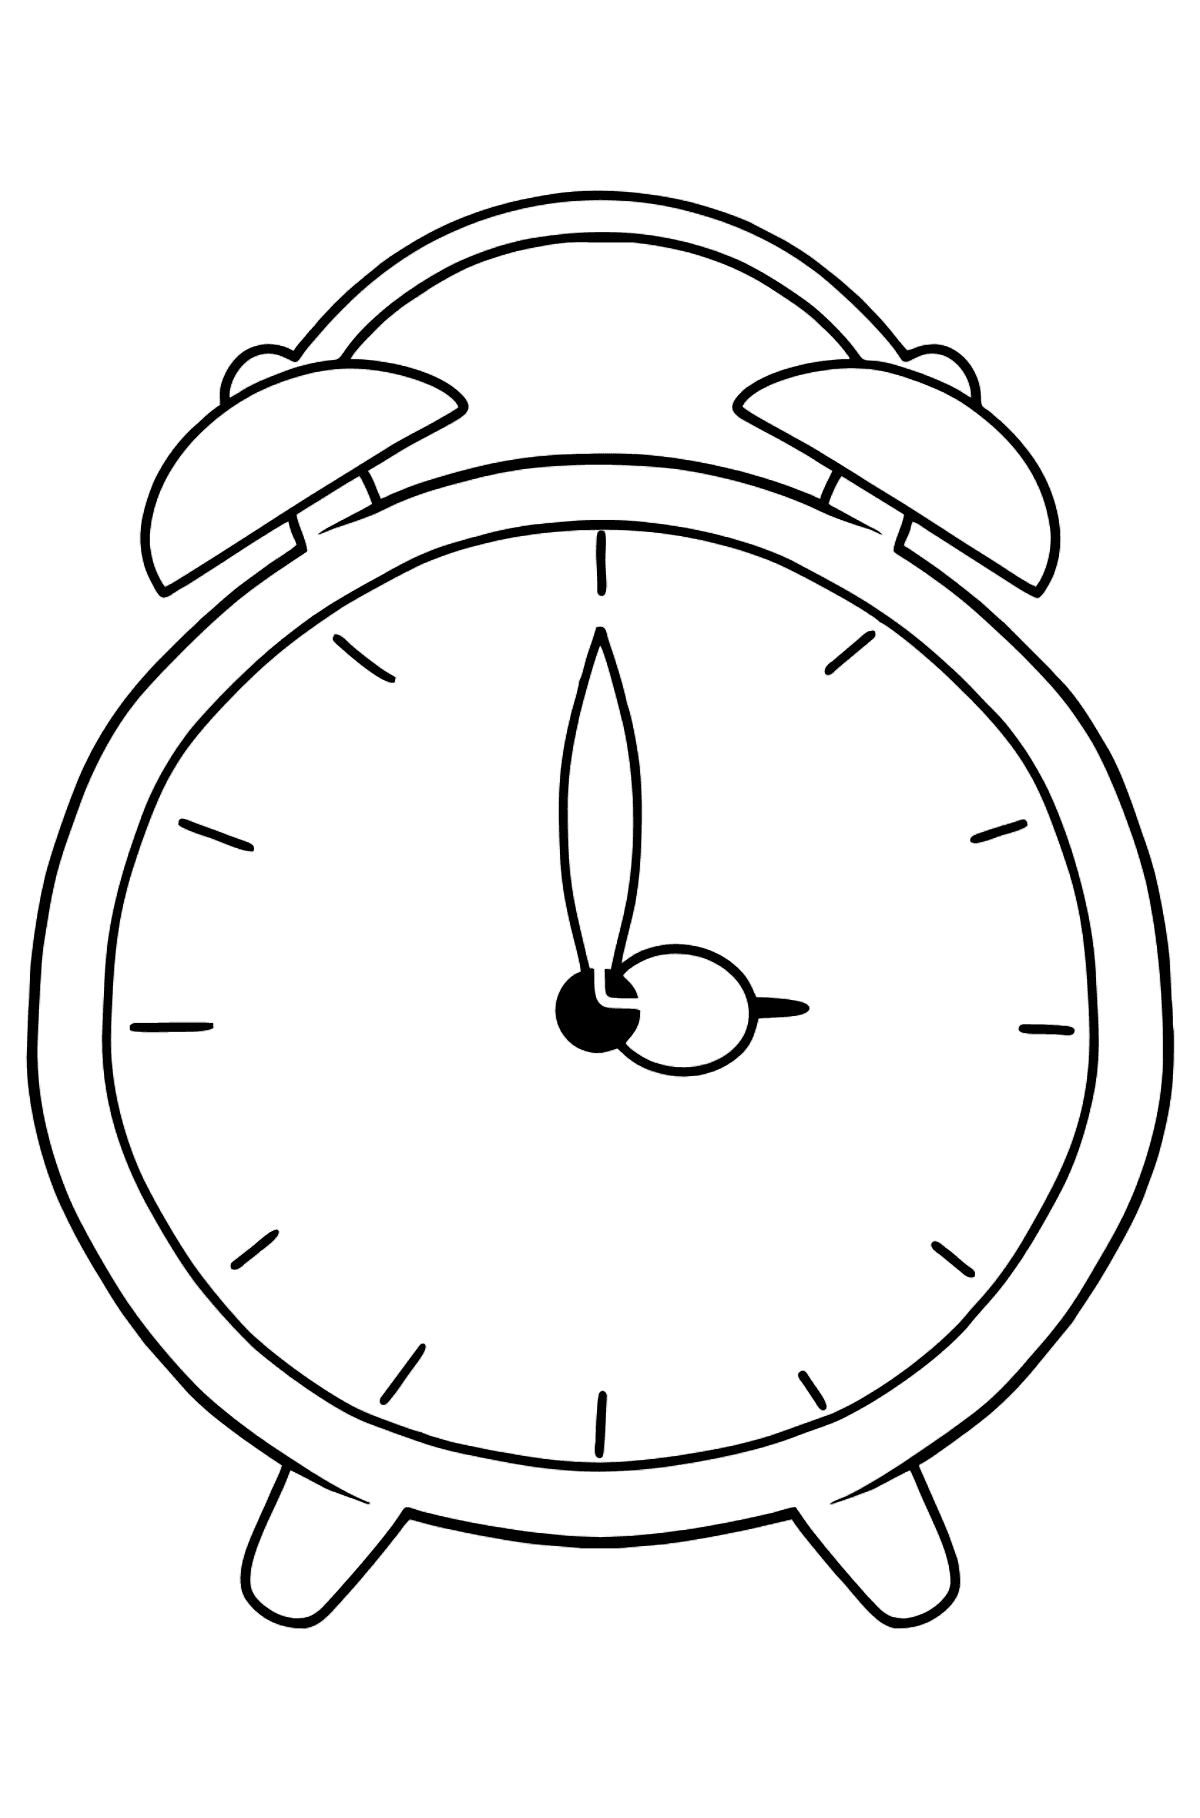 Alarm Clock coloring page - Coloring Pages for Kids